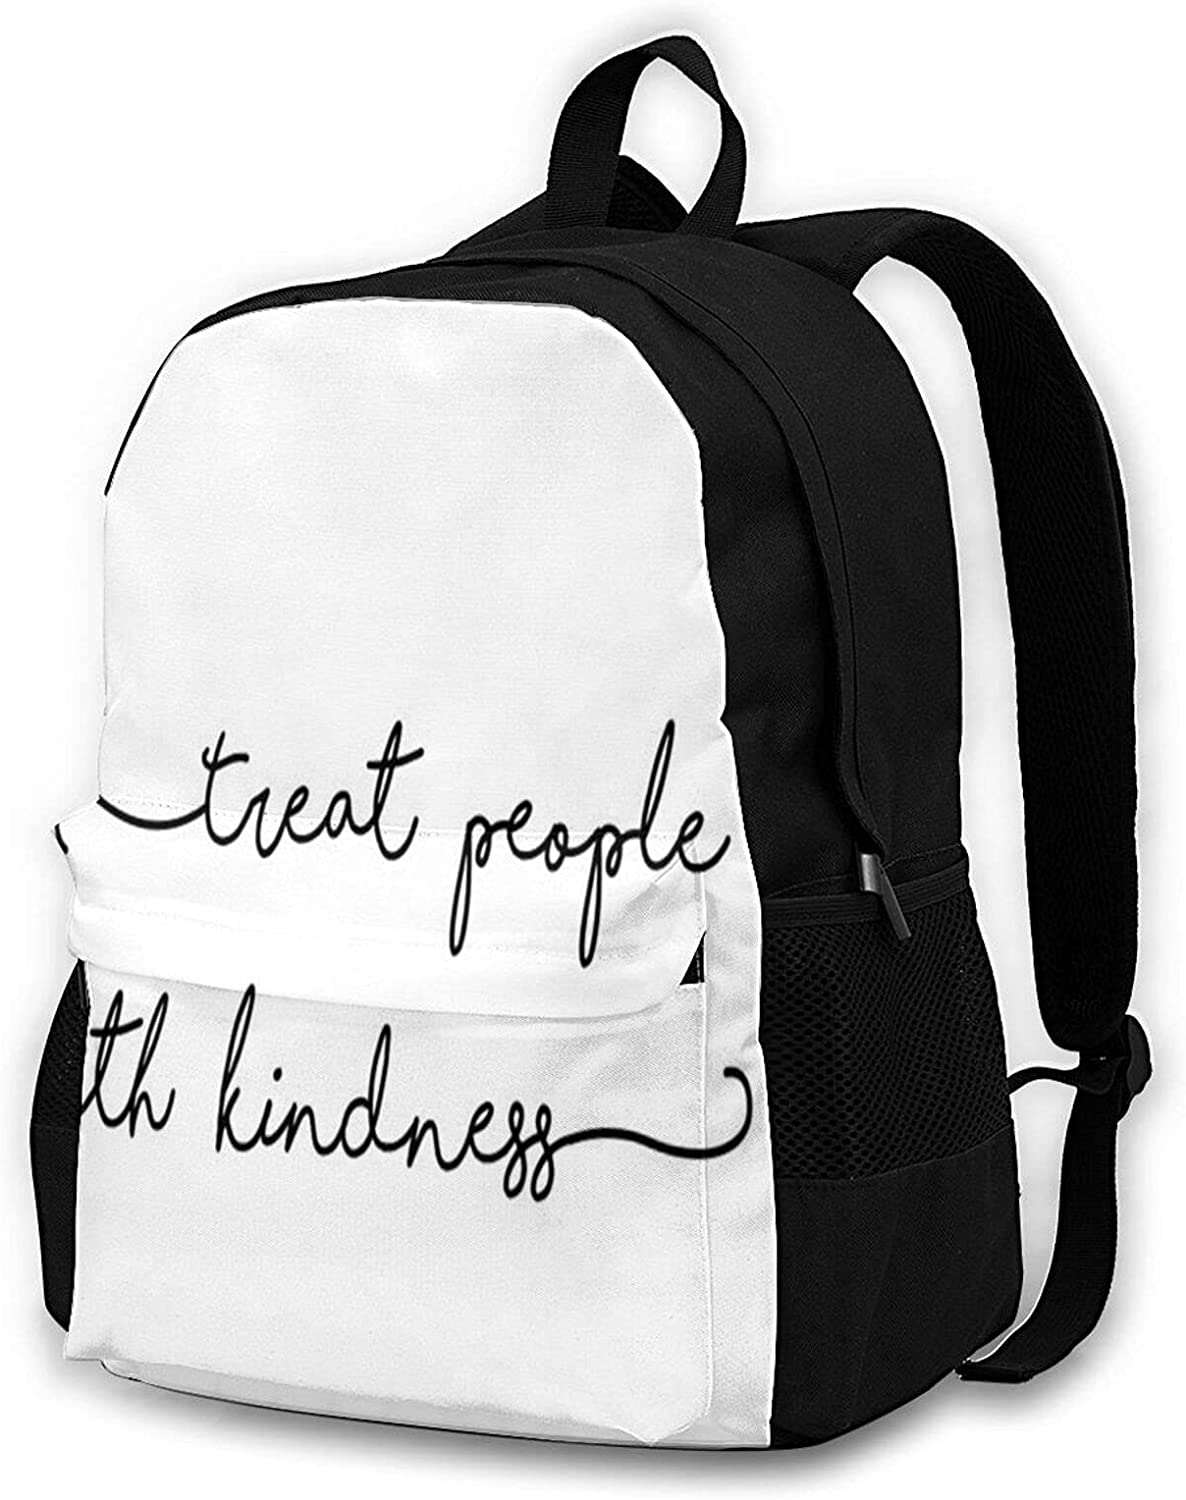 Treat People With Kindness Easy-to-use Deluxe Lightweight Travel Backpack